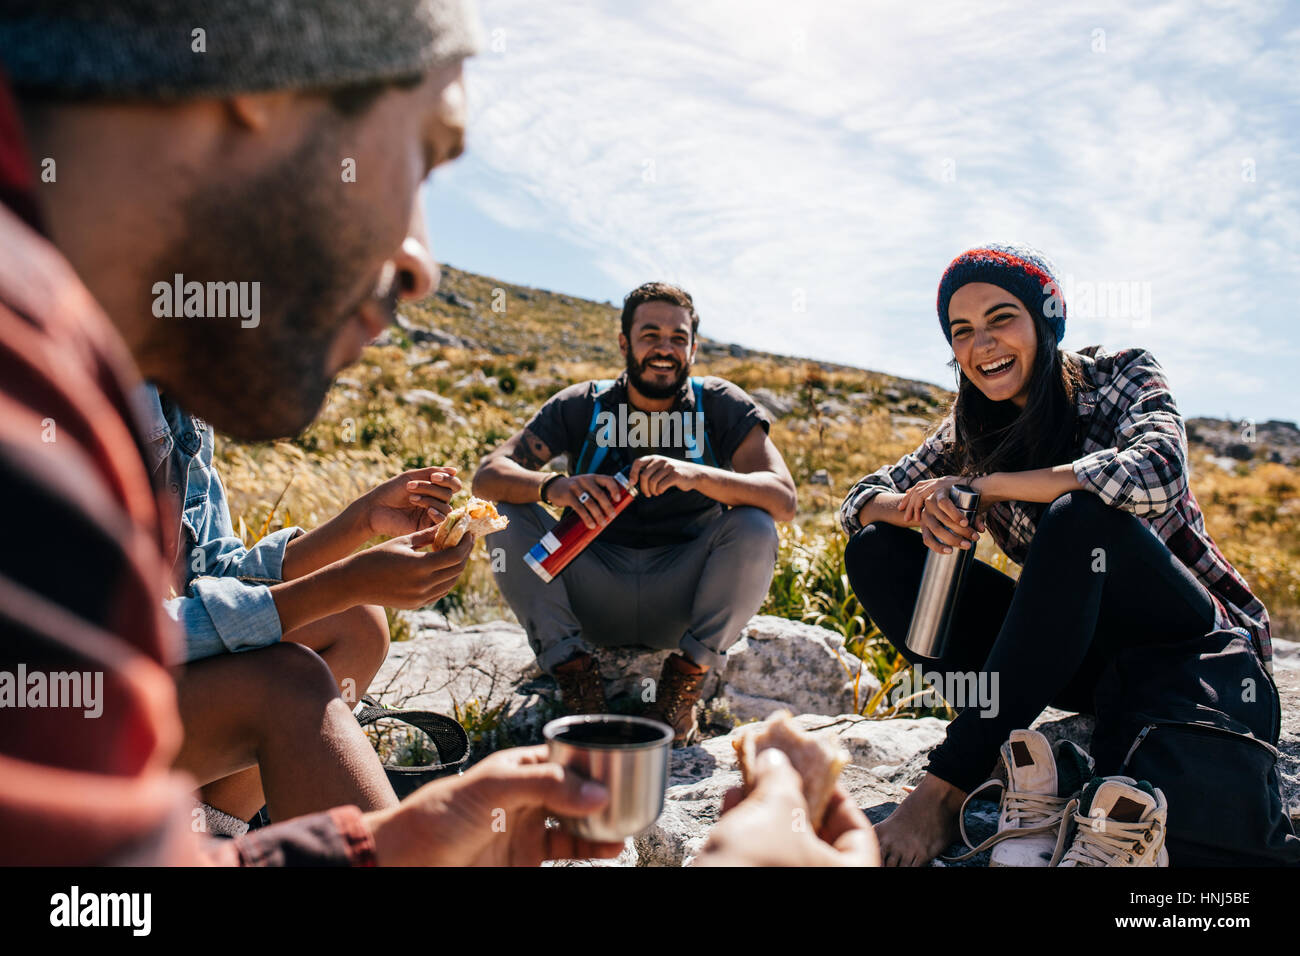 Group of people relaxing and eating during hike. Young woman with friends taking a break during a hike in countryside. - Stock Image